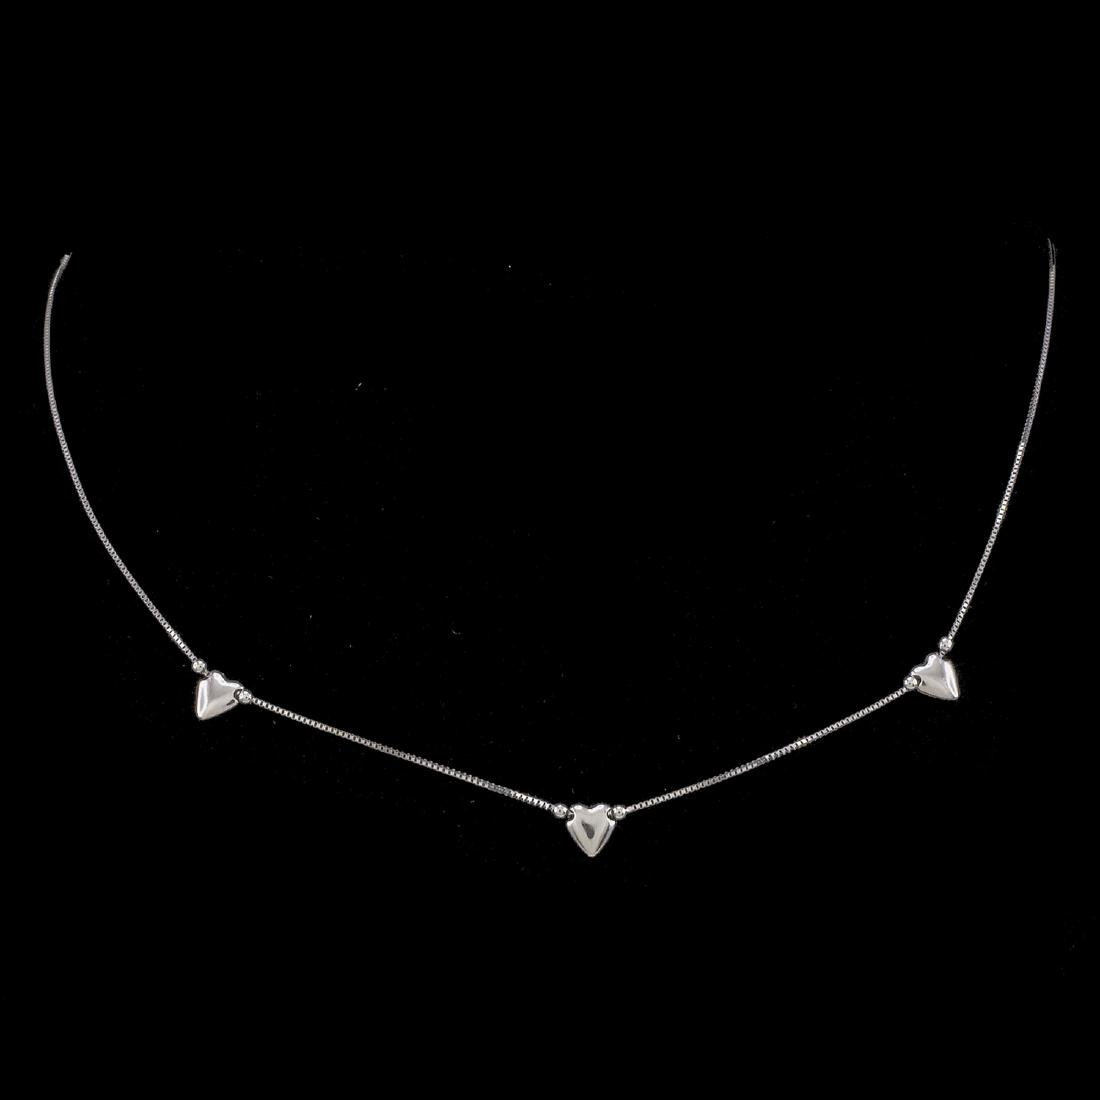 *Fine Jewelry 14KT White Gold Box Chain W 3 Station